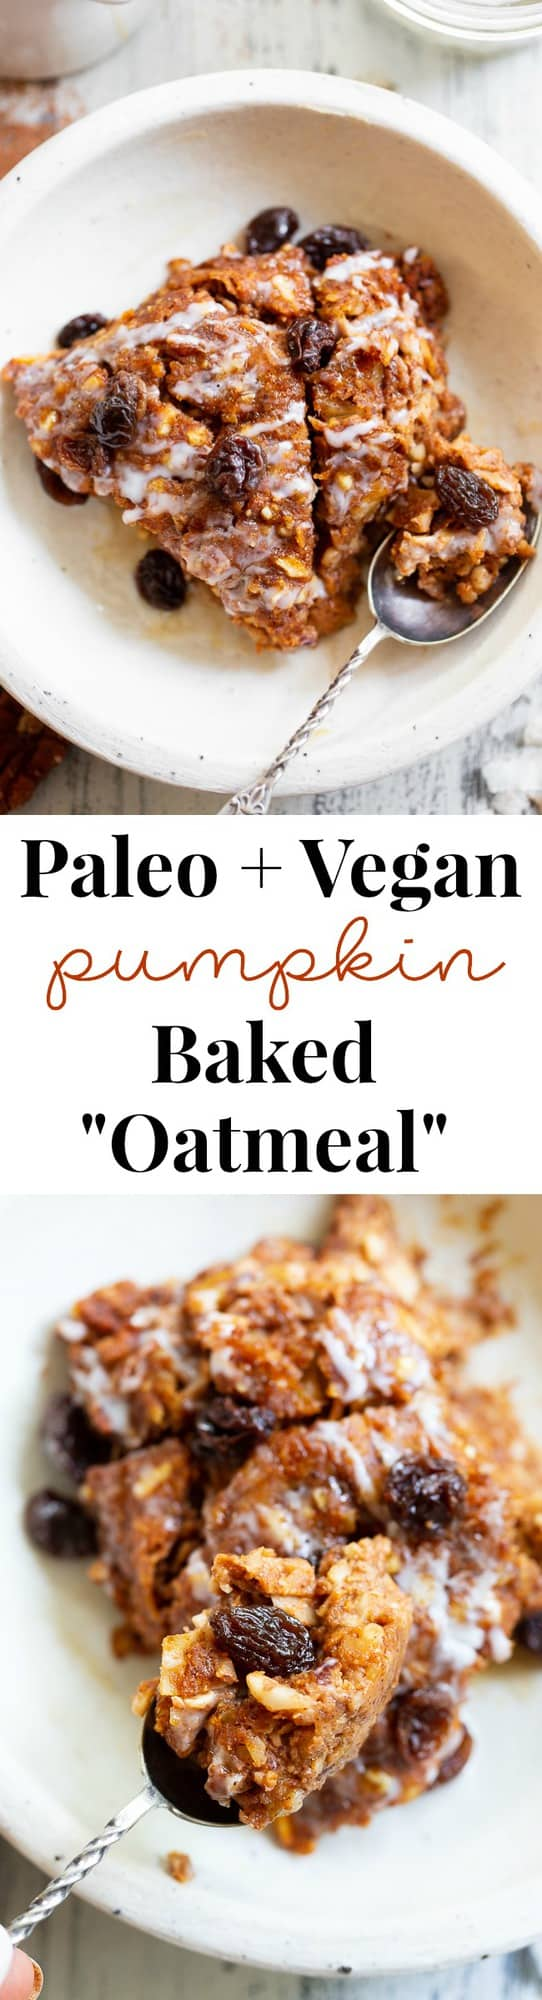 "This pumpkin ""oatmeal"" bake is totally grain free yet tastes just like classic baked oatmeal.  It's packed with pumpkin and pumpkin pie spices, and pure maple syrup adds just the right amount of sweetness.  It reheats perfectly, making it a great fall comfort food breakfast when you're on the go!  Paleo, dairy-free, egg free, and vegan."